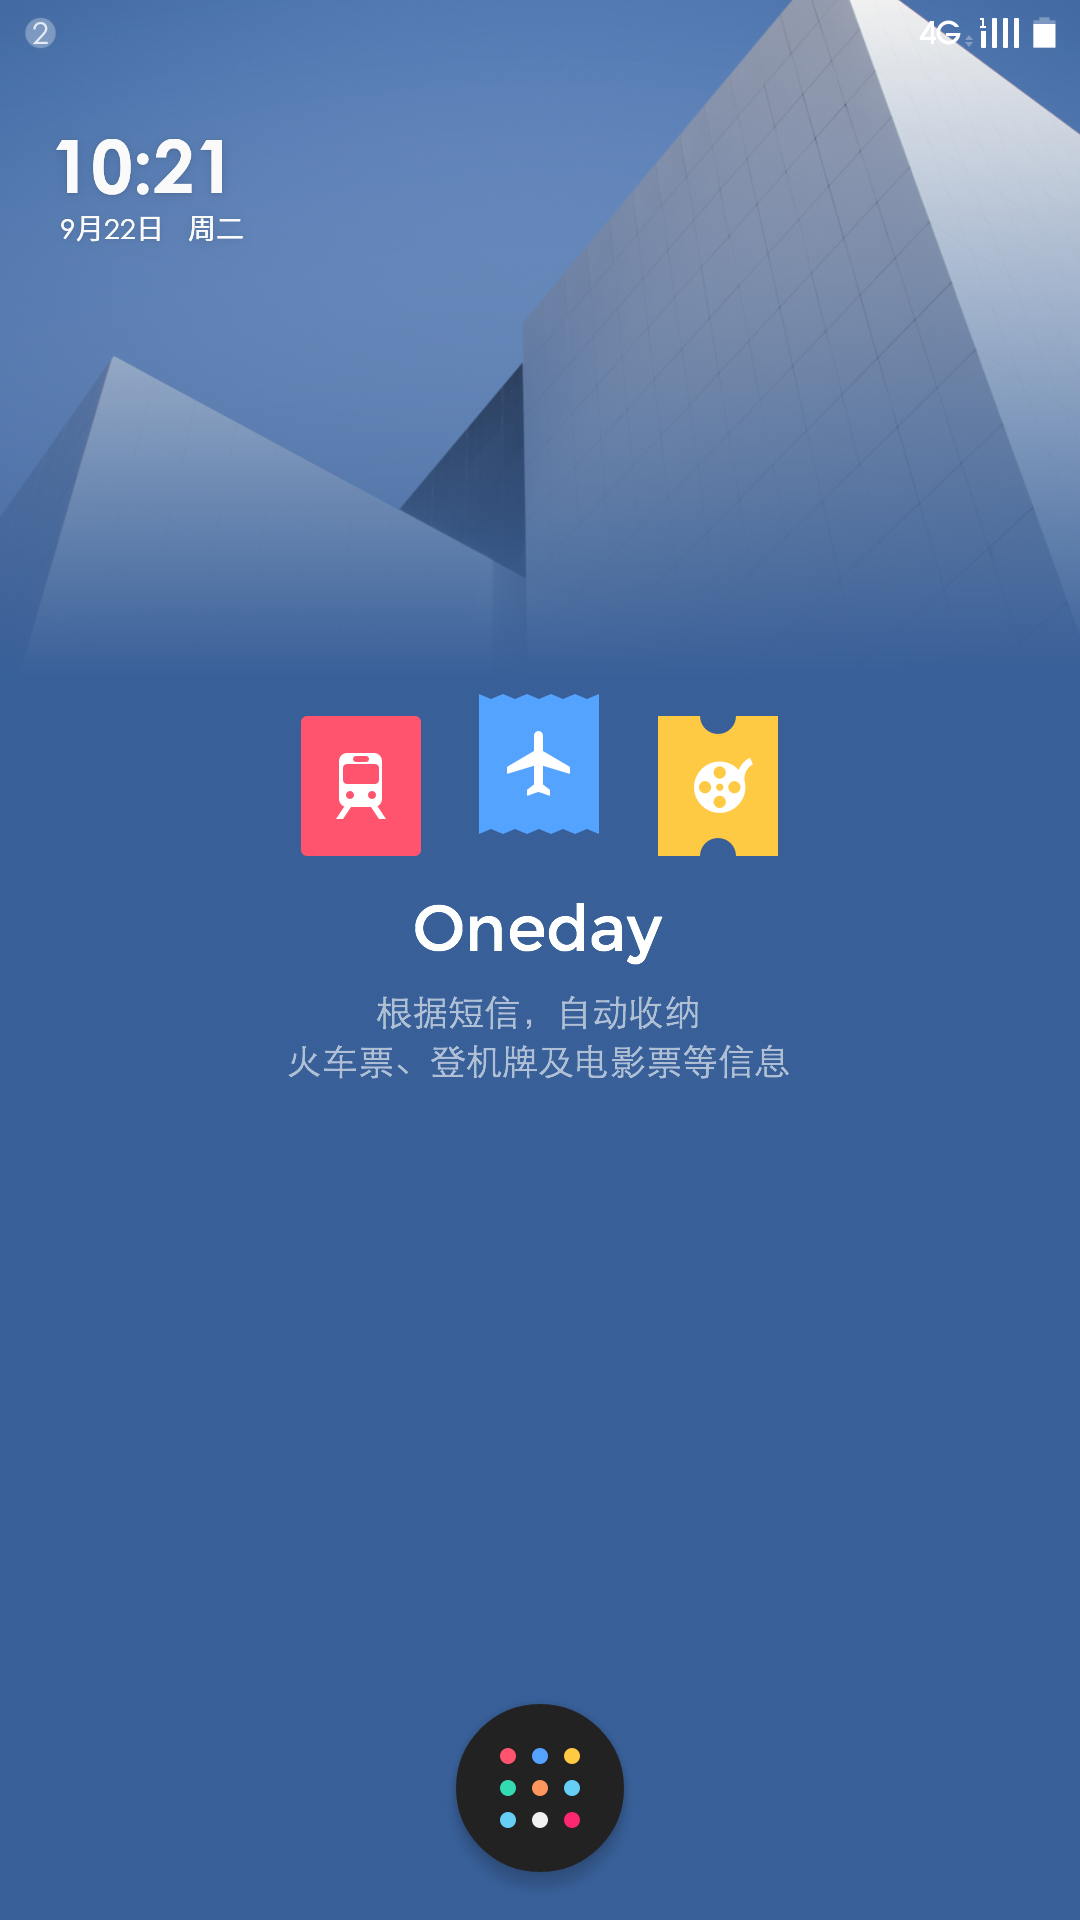 Screenshot_2015-09-22-10-21-51.png